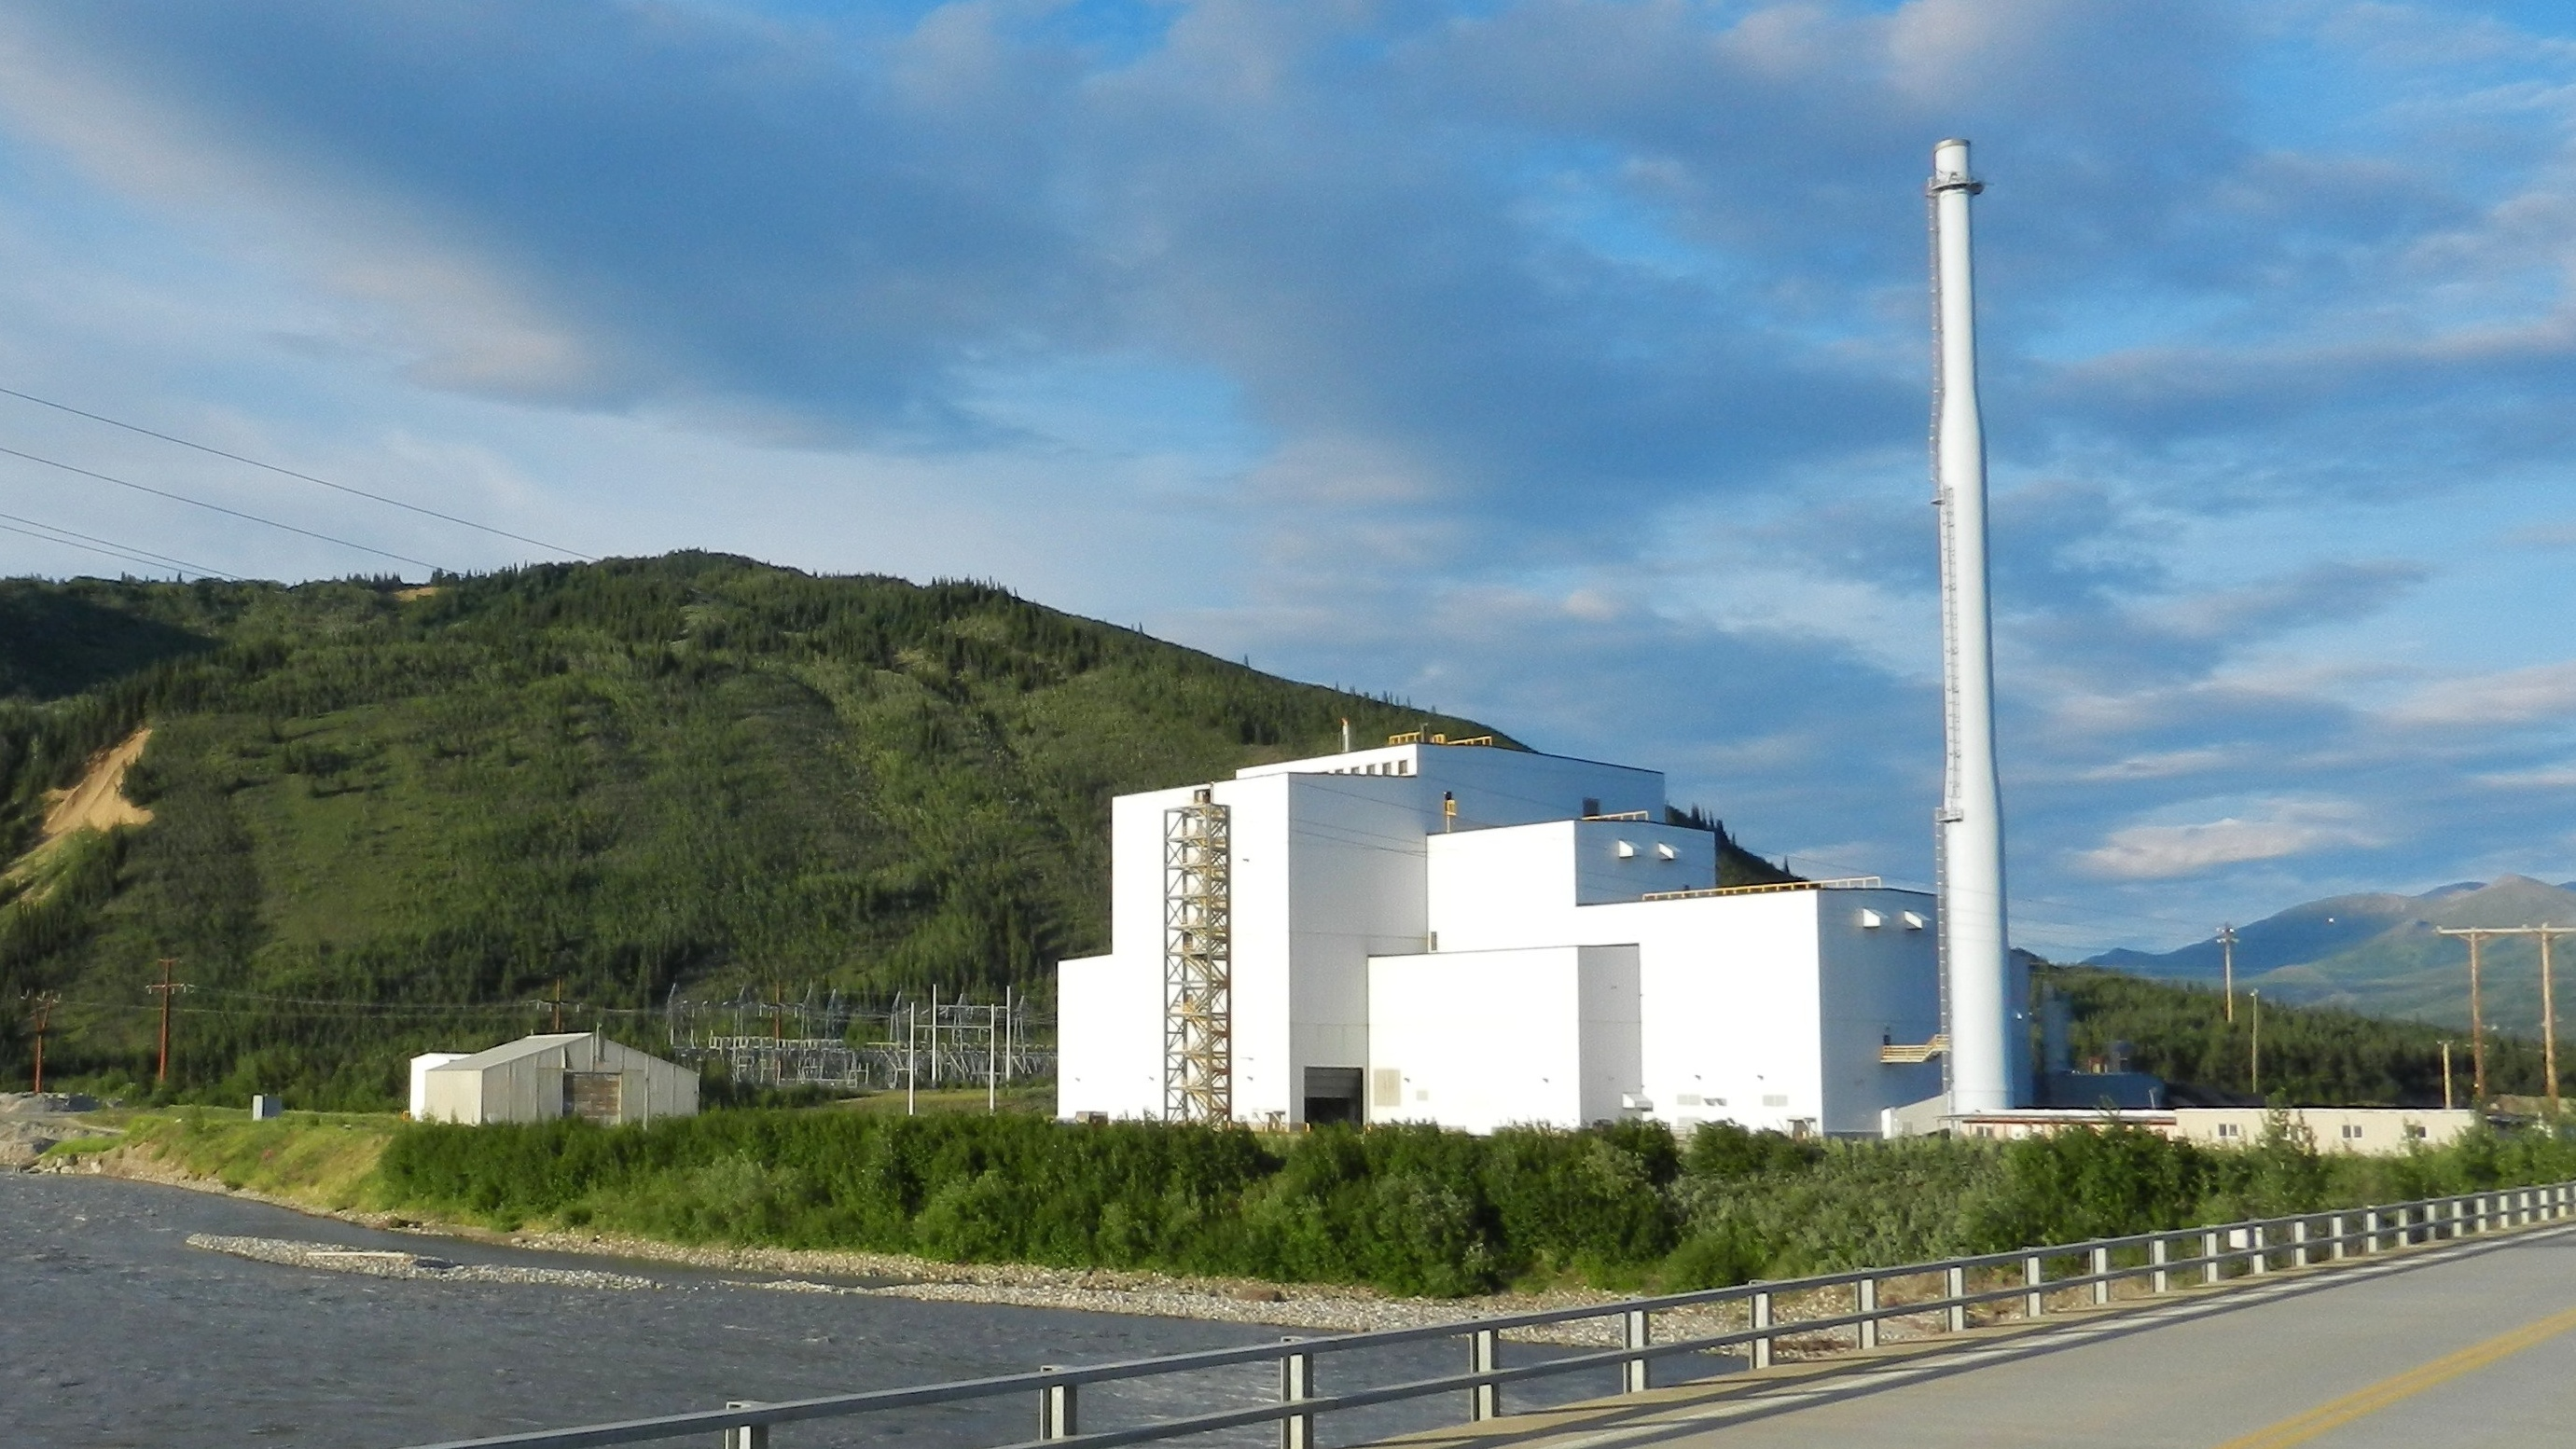 The Healy coal power plant on July 8, 2011.